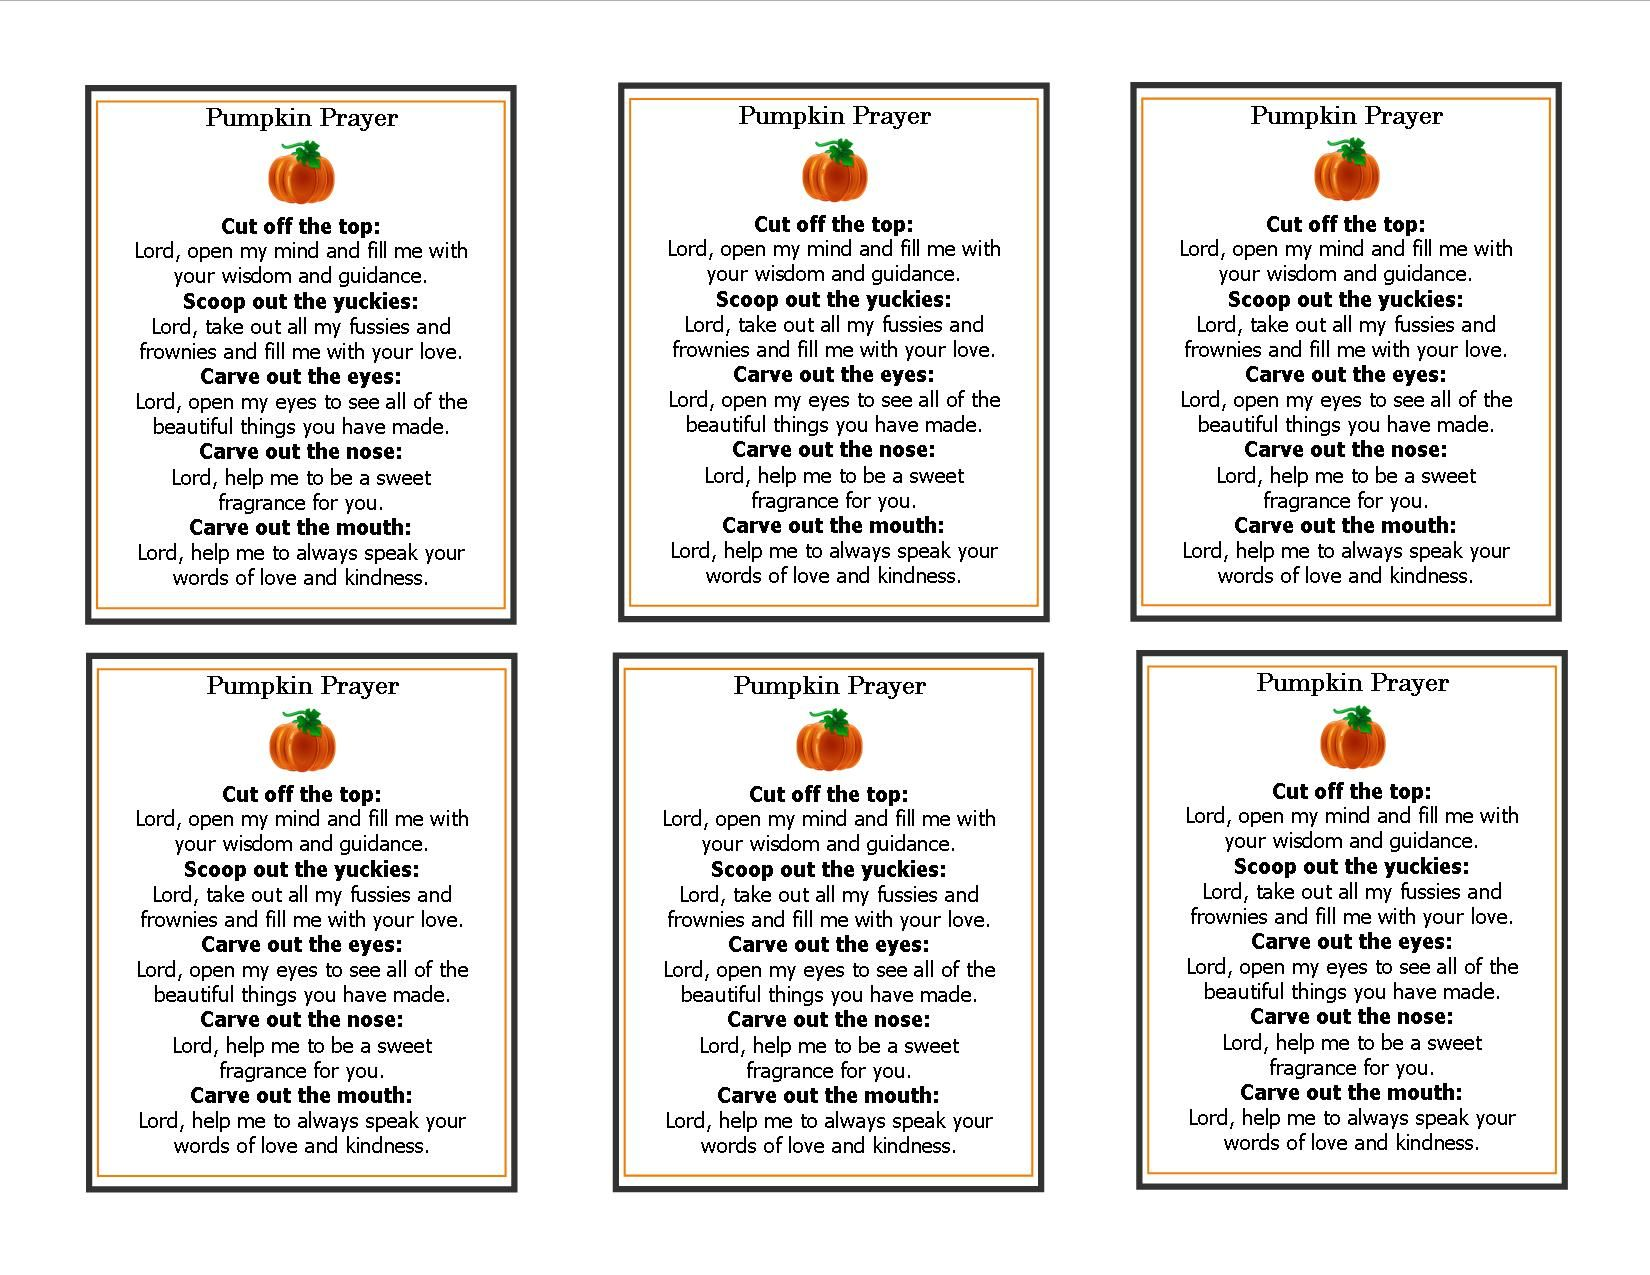 Pumpkin Prayer Template Perfect For The Inside Of A Halloween Card And A Great Alternative